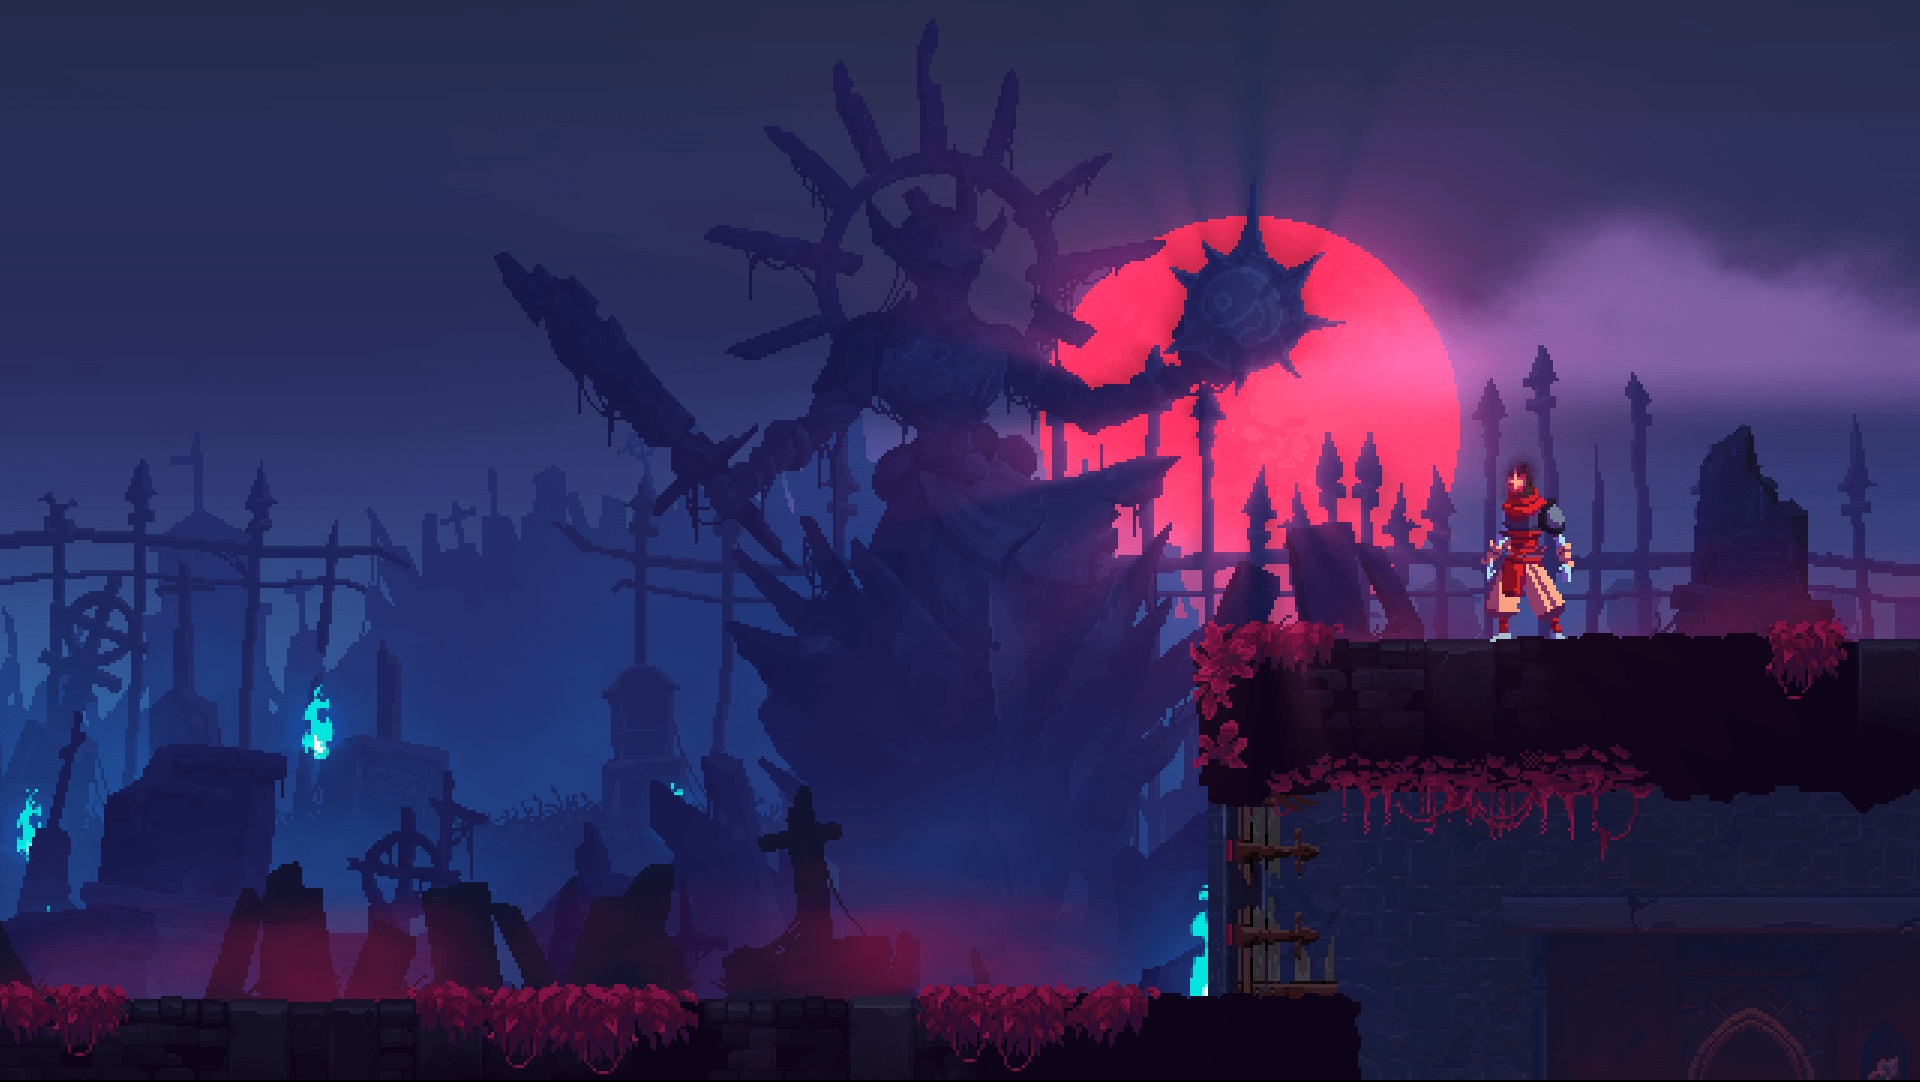 「dead cells」の画像検索結果